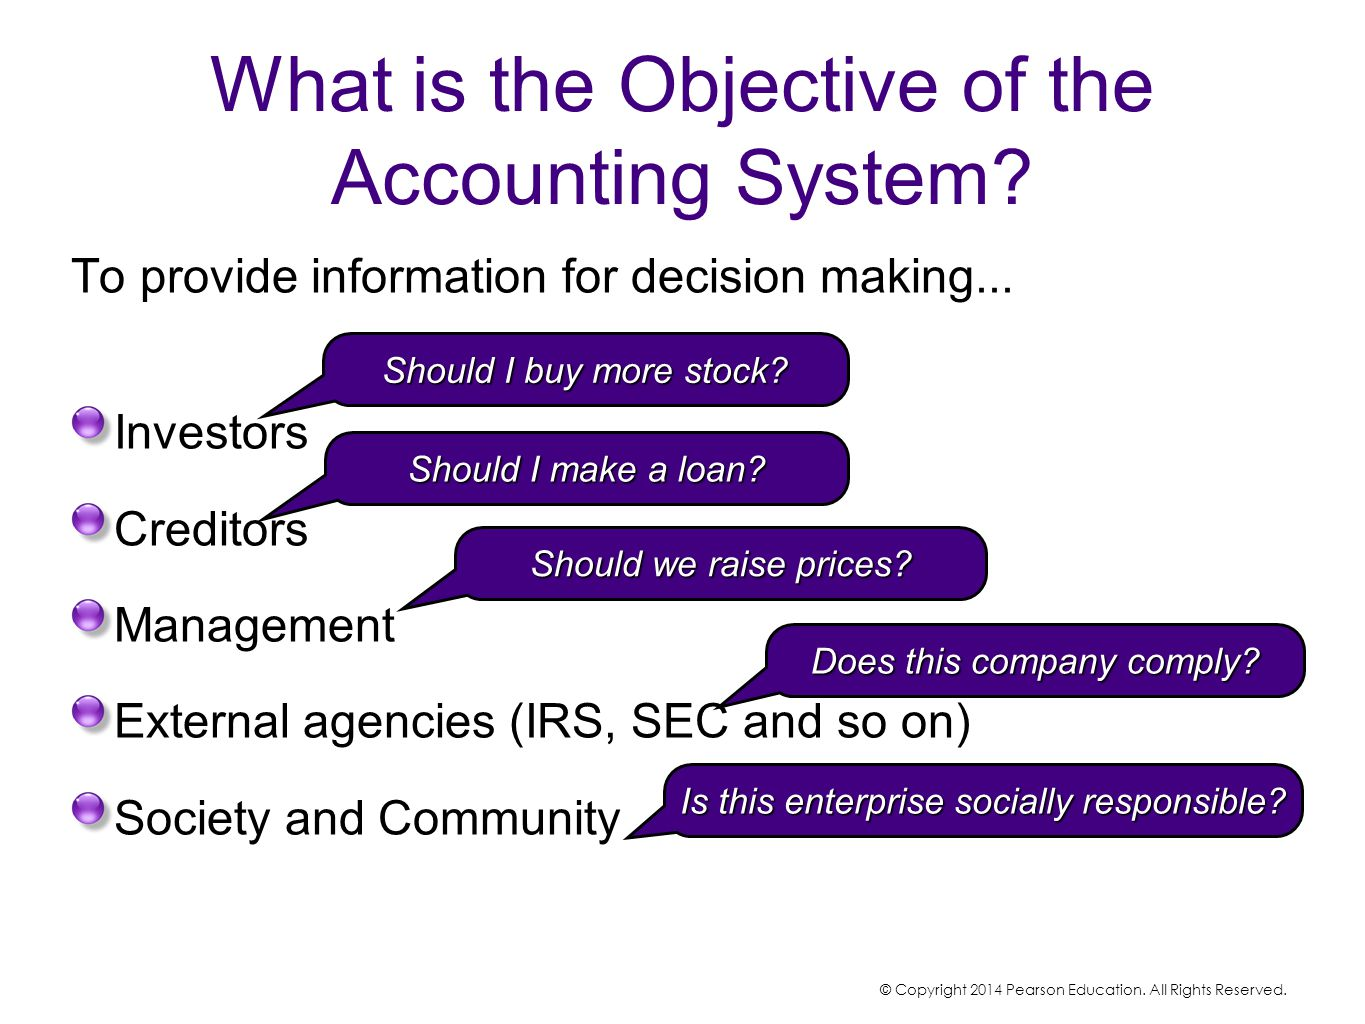 To provide information for decision making... Investors Creditors Management External agencies (IRS, SEC and so on) Society and Community Should I buy